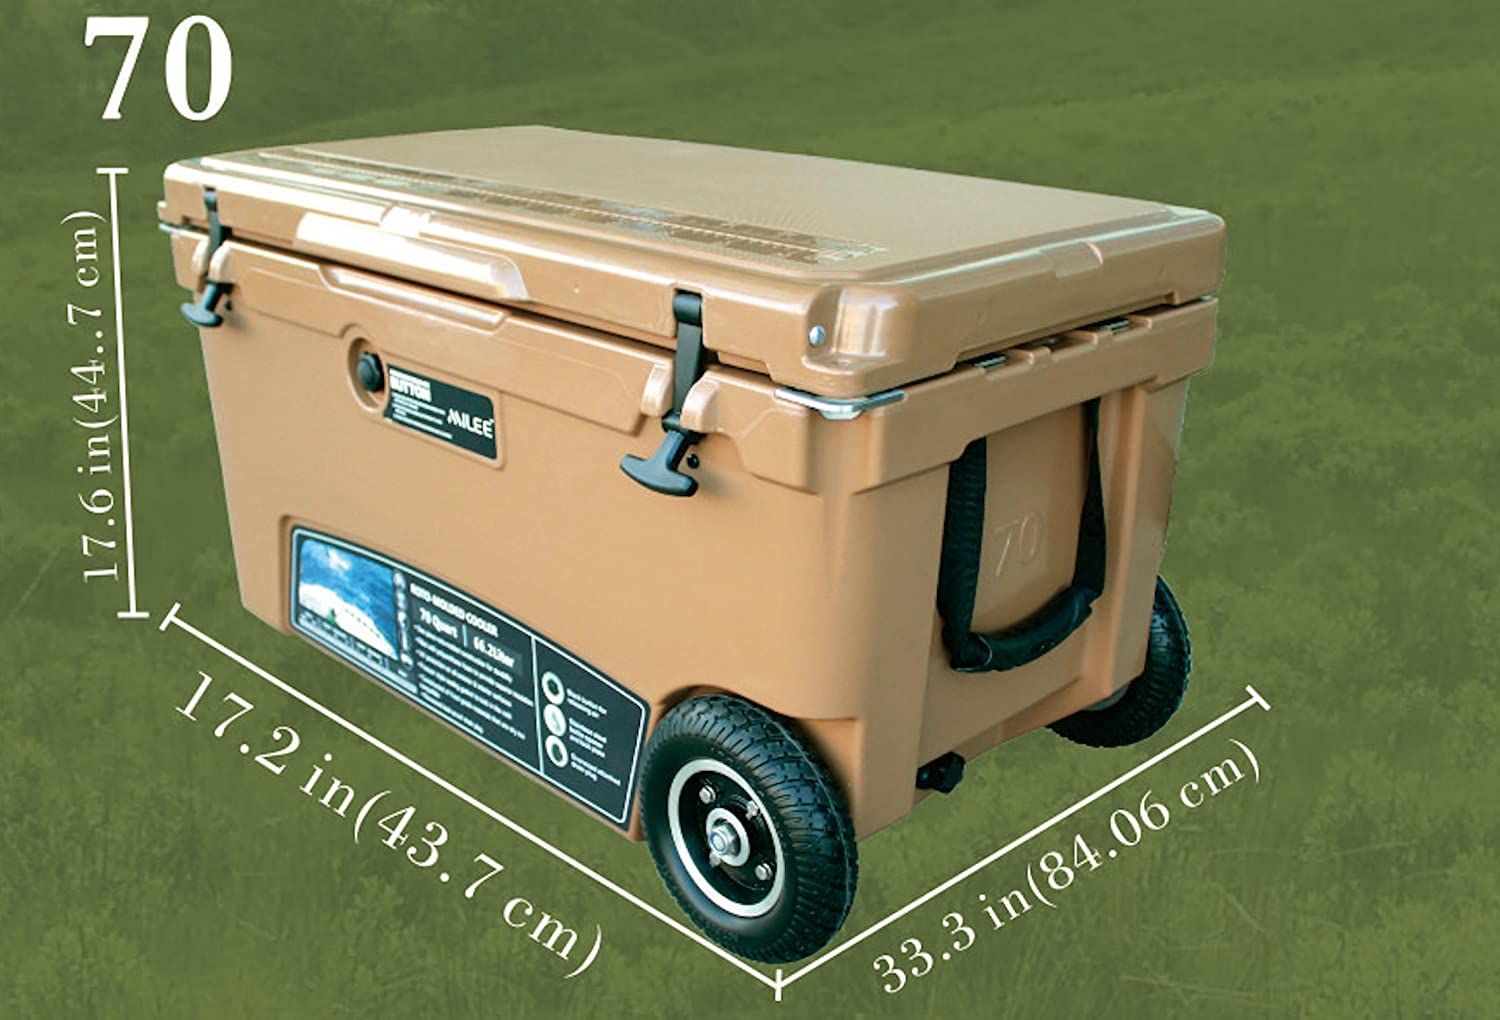 Divider,Basket and Cup Holder are Free MILEE--Heavy Duty Wheeled Cooler 70QT $50 Accessories Included